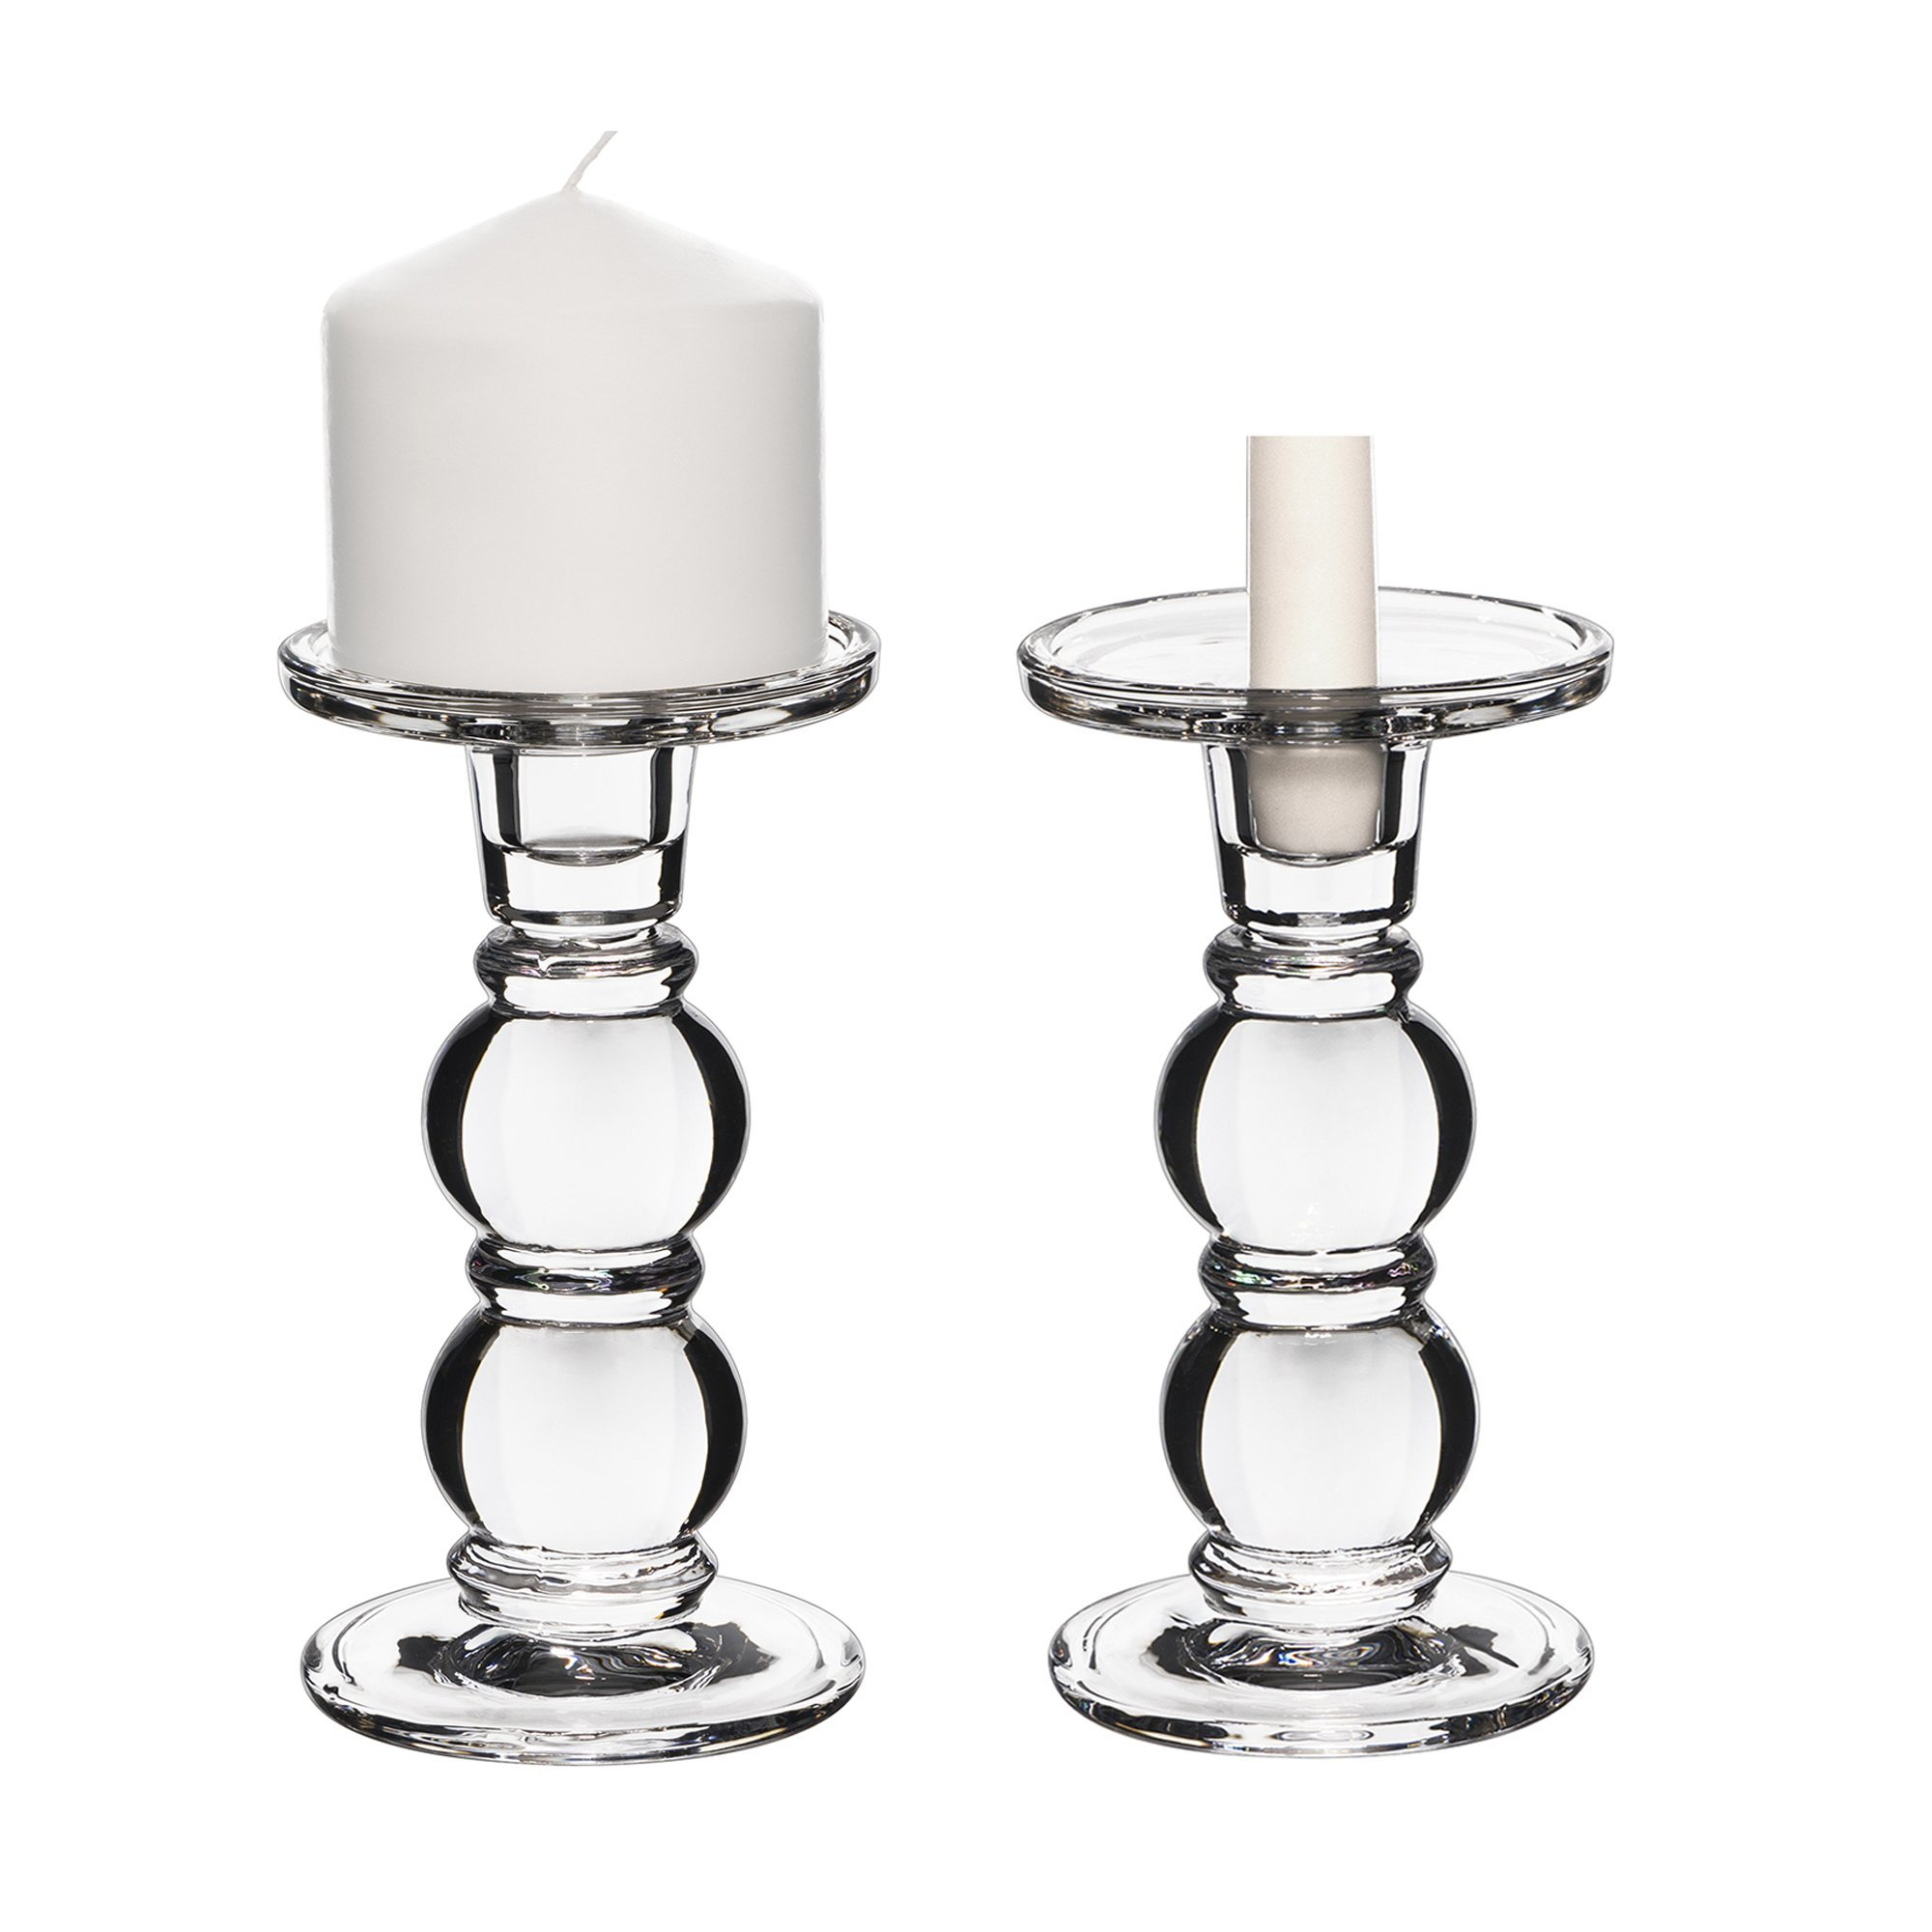 """CYS EXCEL Glass Candle Holders for 3"""" Pillar or 3/4"""" Taper Candle. Candle Holder Height-7.25"""", Clear Glass, Wedding Decoration, Candlestick Pack of 2 PCS"""